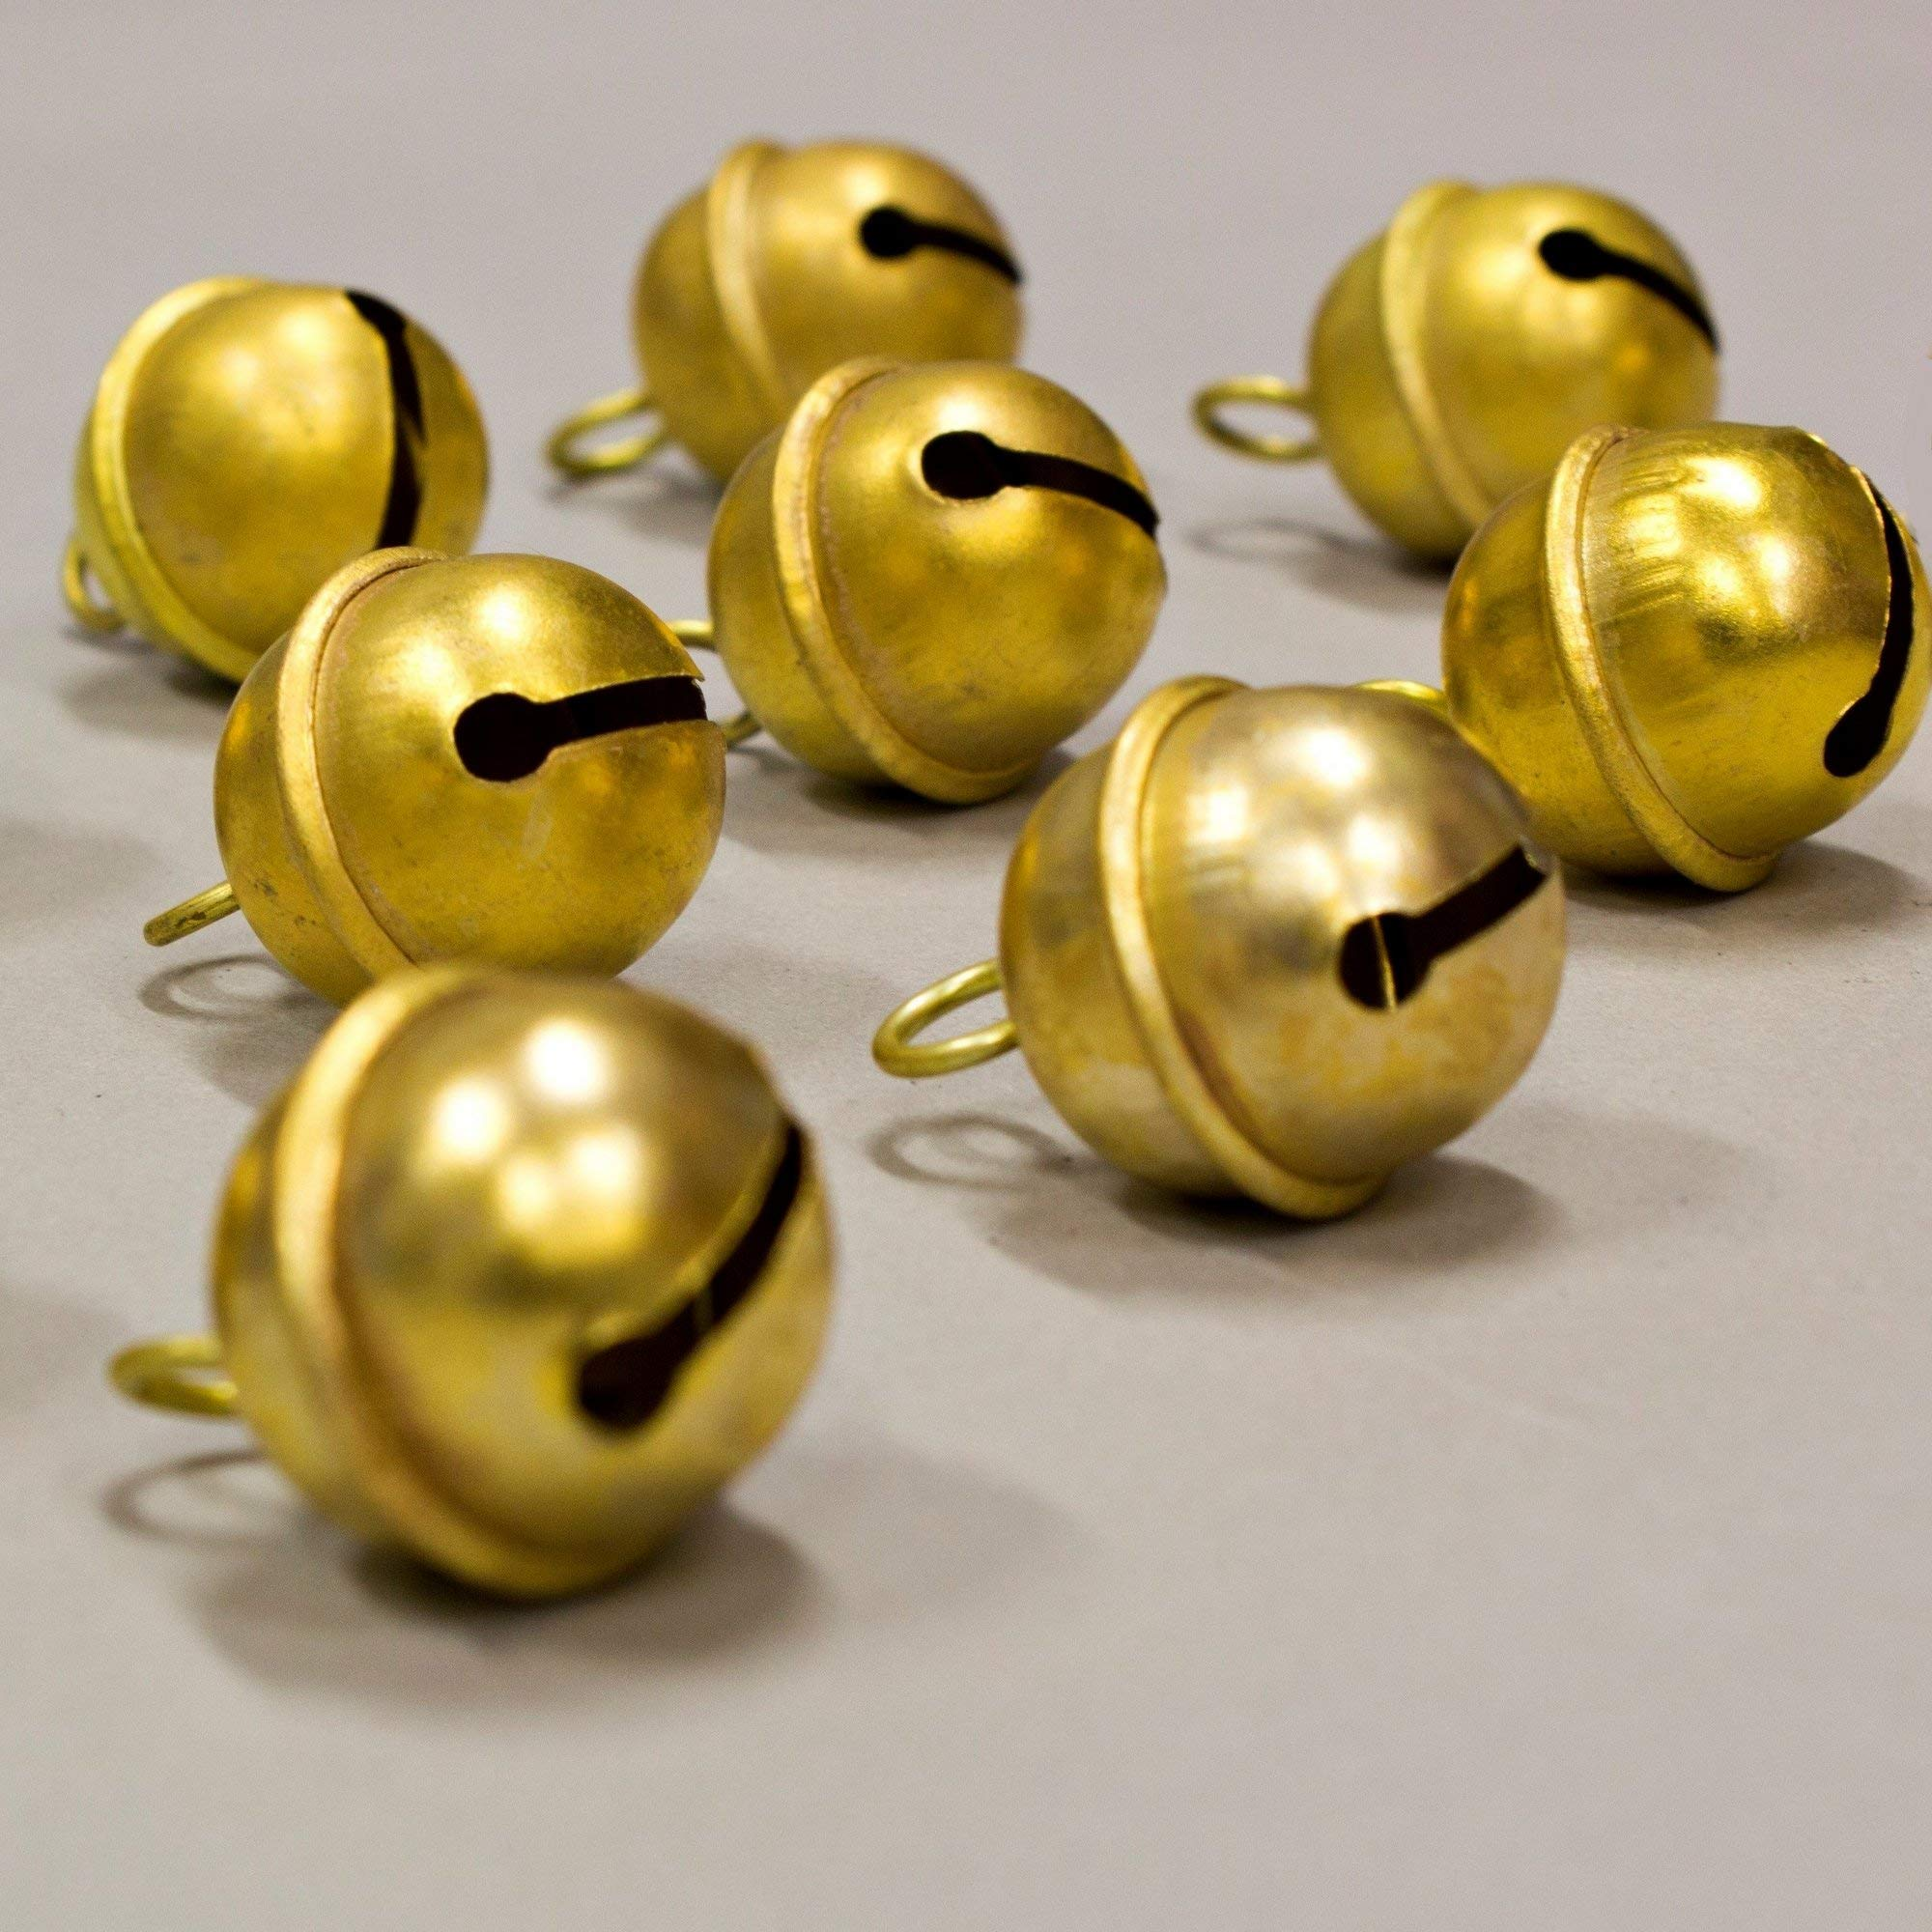 12 Pcs Jingle Bells Express Musical Rhythm Polar Sleigh Bells Polished Brass, for Door Knob, For Craft work, Anniversary Cattle Party Favors Wall Art Orchard Garden Art 1.25-inch High, Polished Brass by India Arts